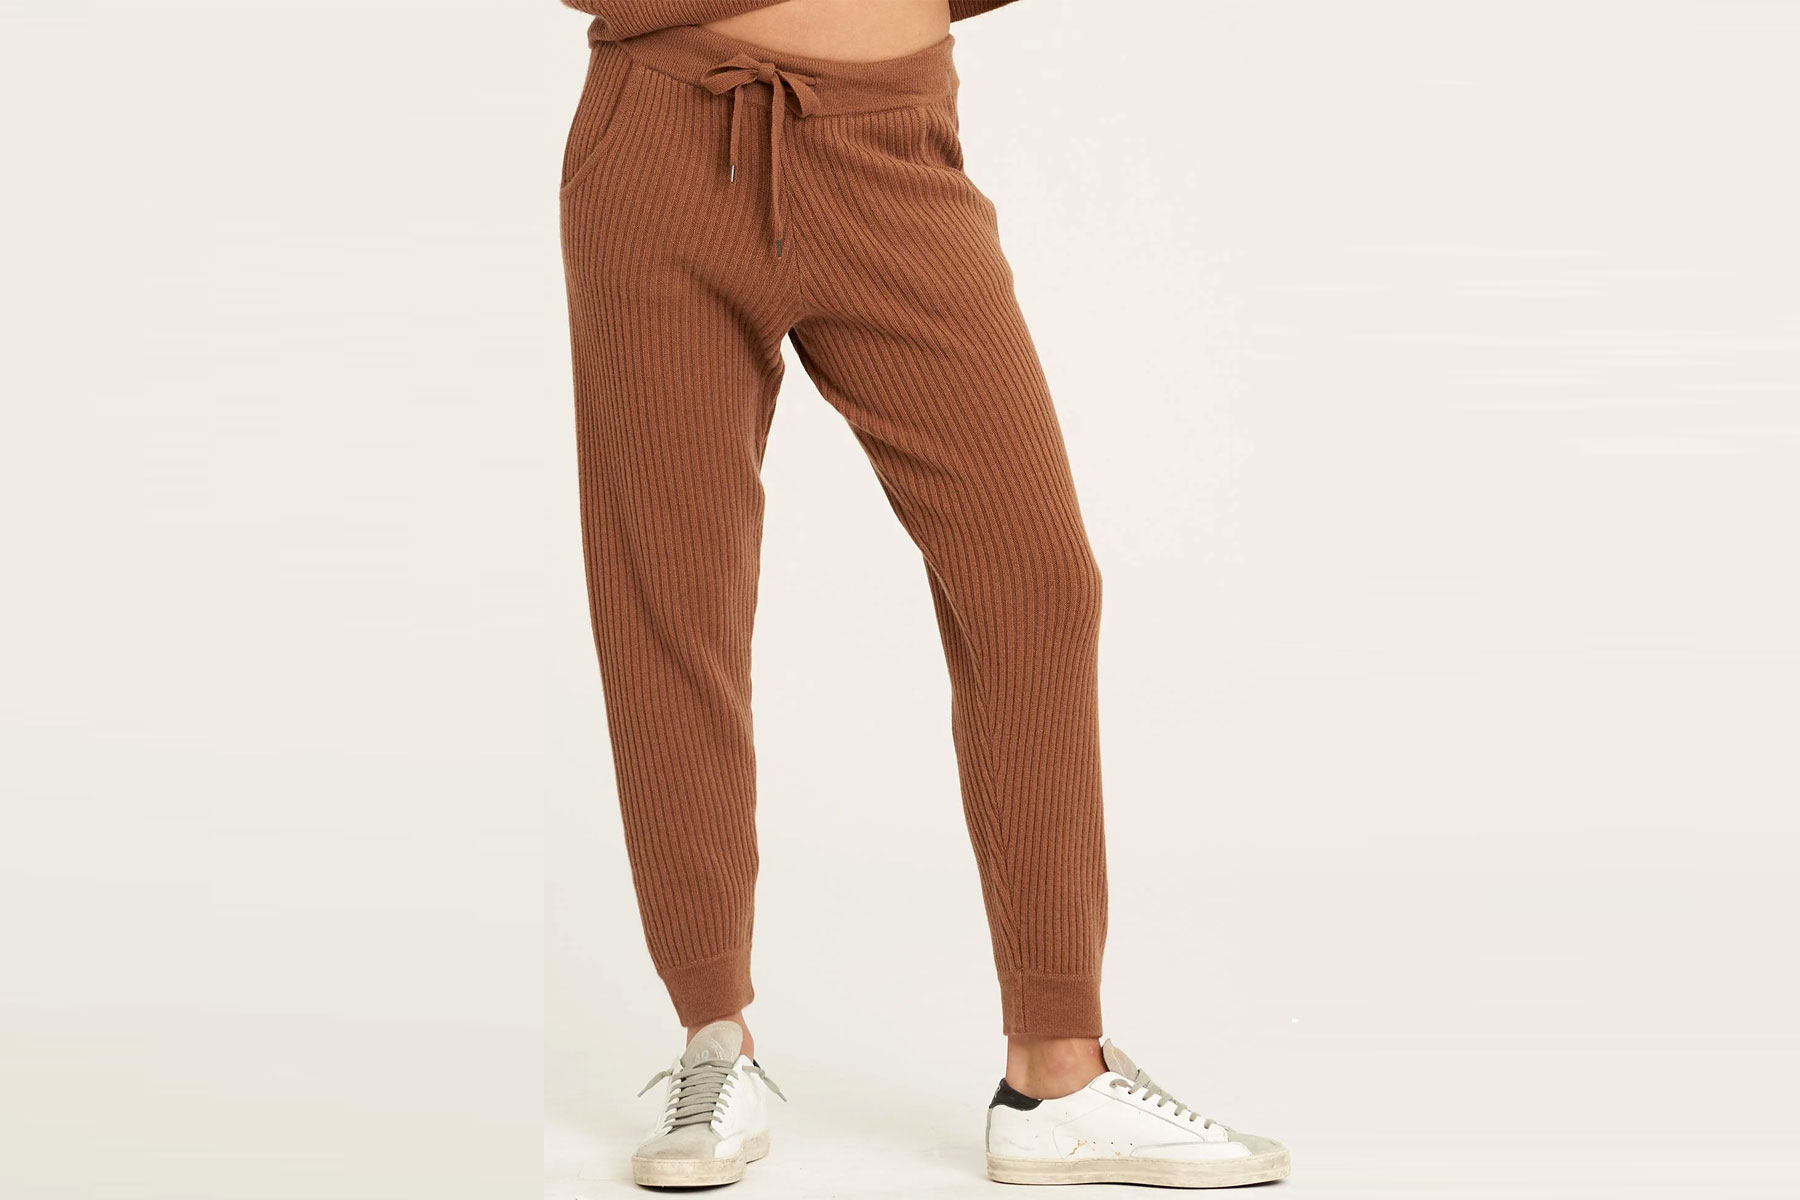 Brown/camel cashmere joggers